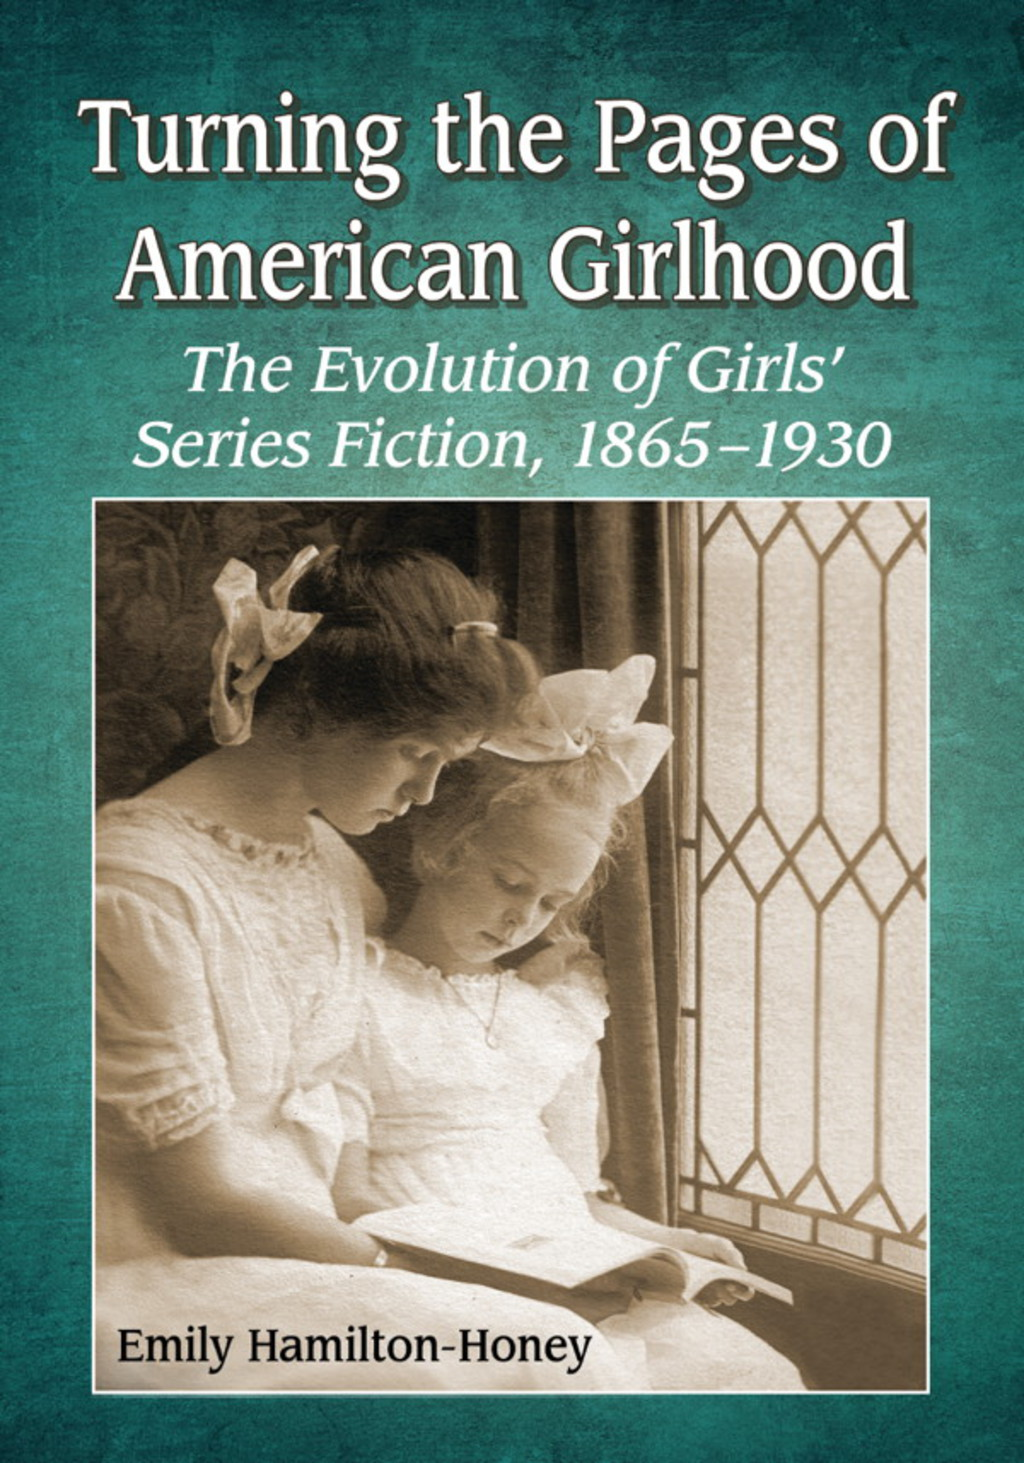 Turning the Pages of American Girlhood: The Evolution of Girls' Series Fiction, 1865-1930 (ebook) eBooks